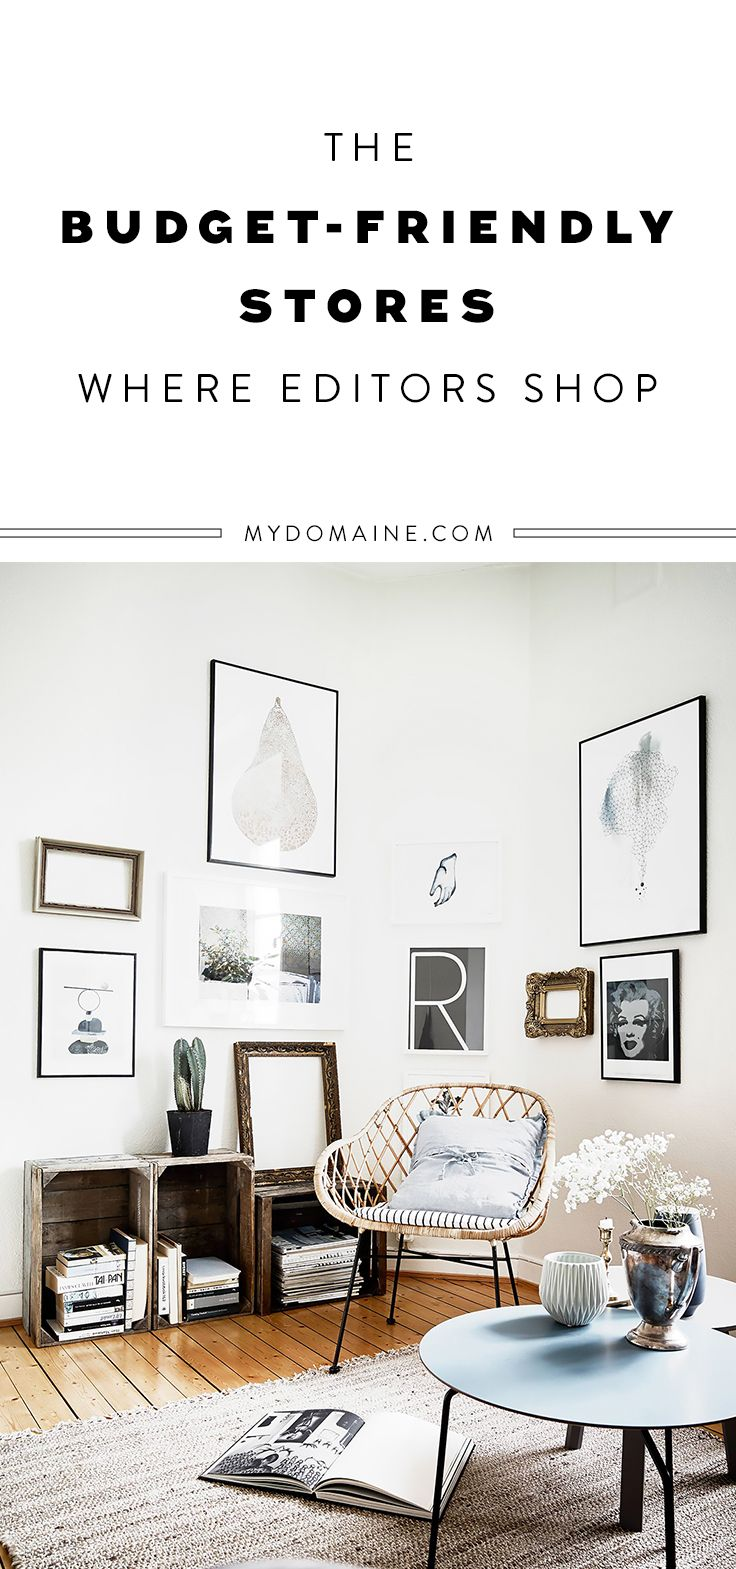 Where to shop for affordable décor